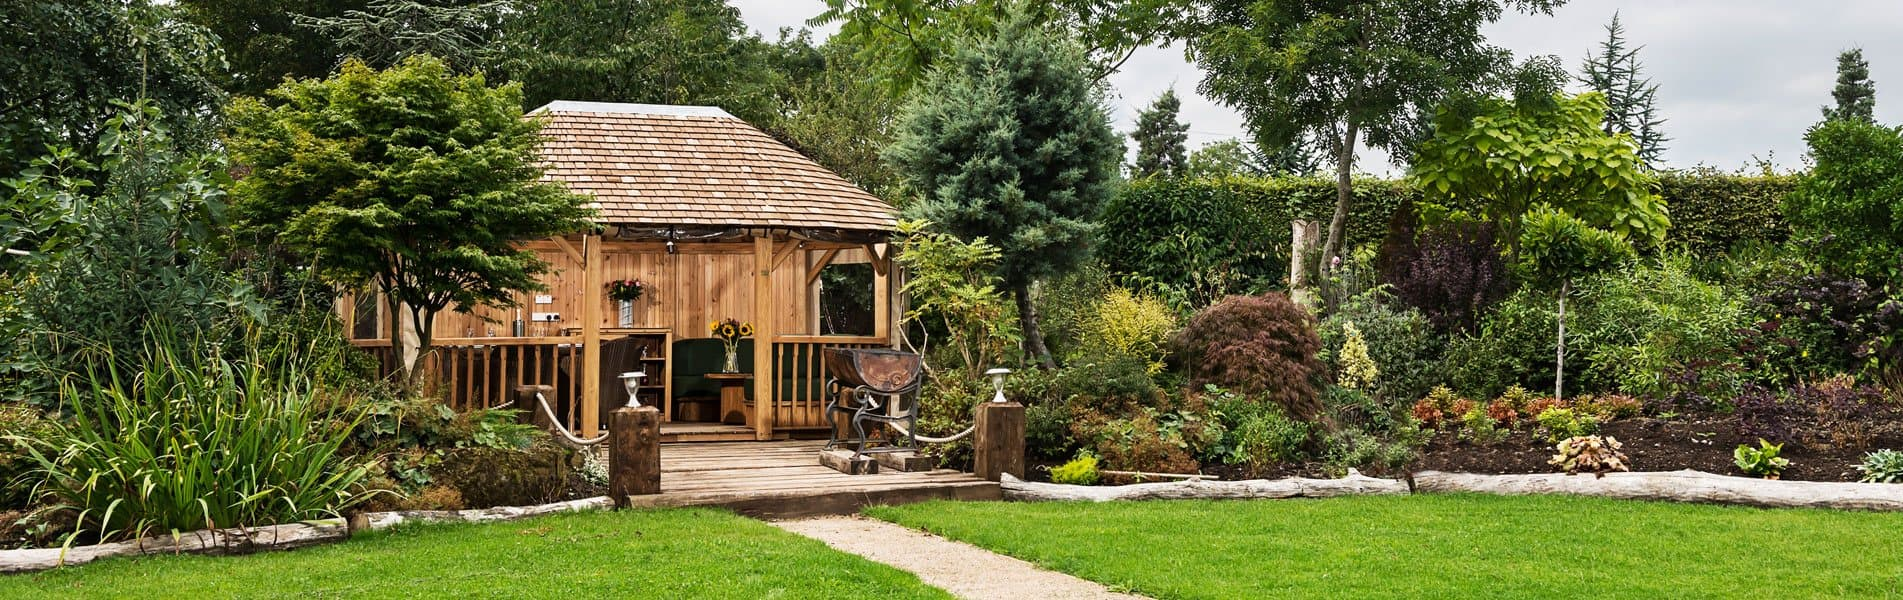 Luxury Wooden Hampton Pavilion